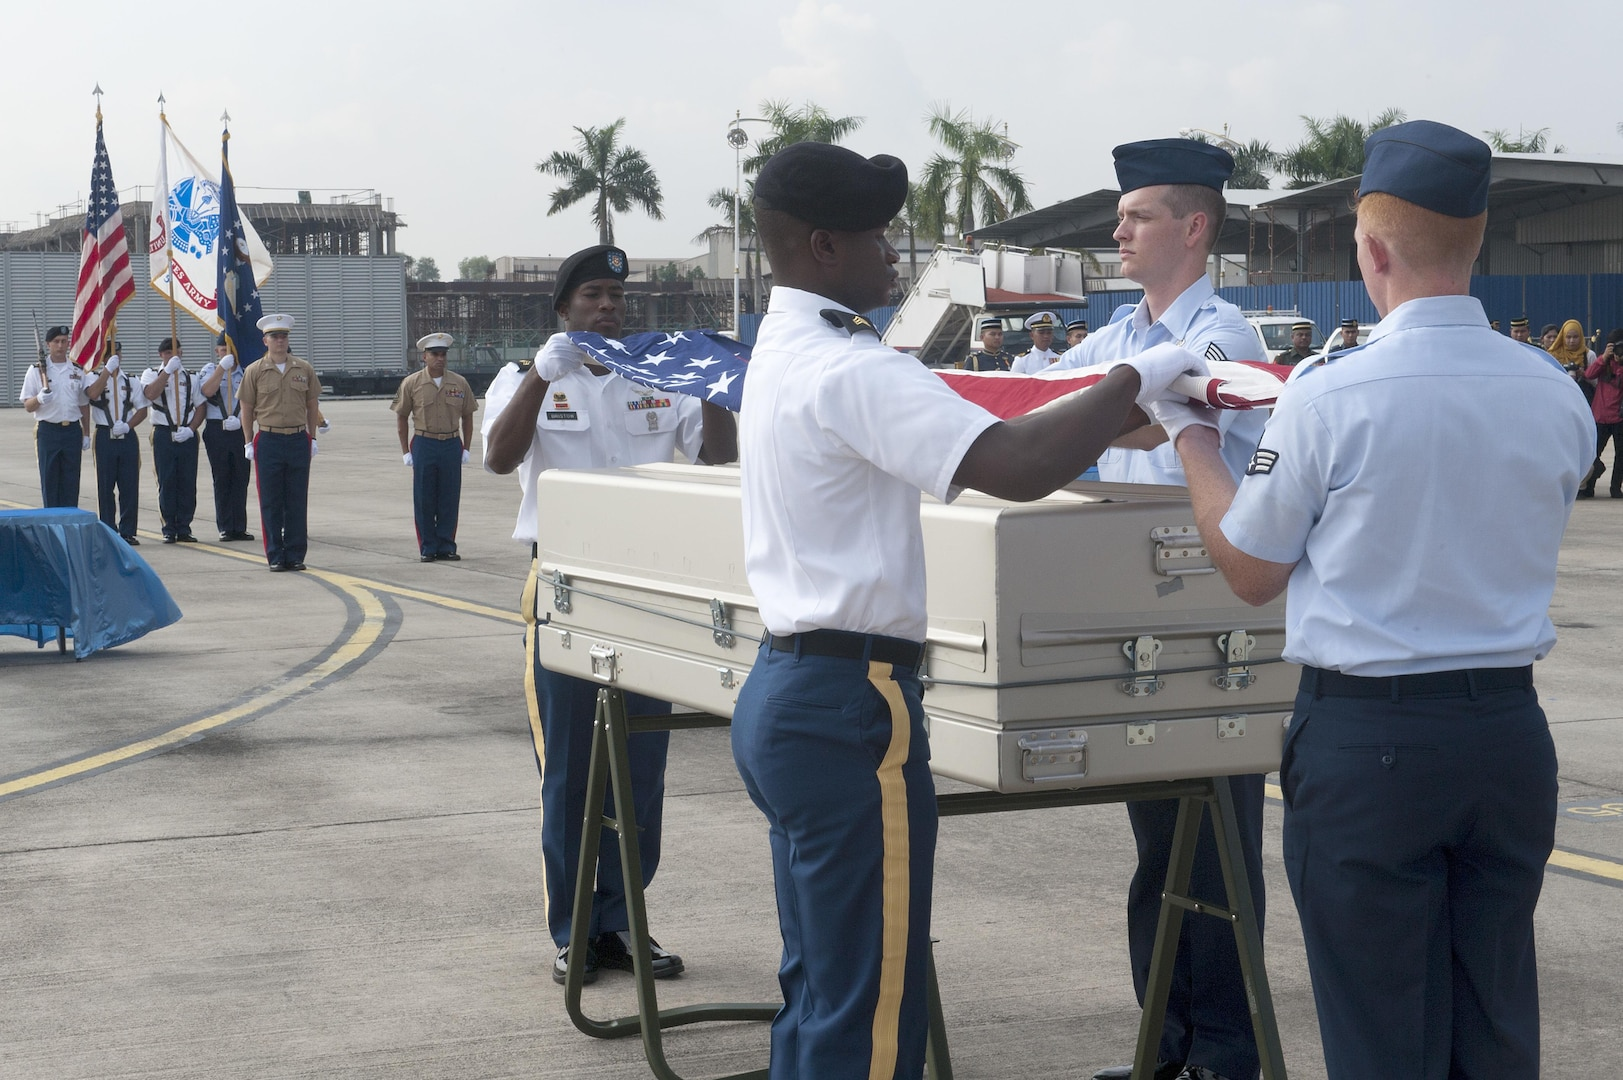 A joint service team prepares to drape an American flag over a casket during a repatriation ceremony at Subang Air Base, Malaysia, Nov. 5, 2015. The 15-member team comprised of members of the Defense POW/MIA Accounting Agency as well service members from U.S. Army Pacific and Pacific Air Force Command, was sent from Hawaii to honor the remains of a fallen service member who paid the ultimate sacrifice when his plane went down over Malaysia in 1945. The ceremony signifies the transfer of the remains from Malaysia back to the U.S. where the service member can be ultimately identified and returned home. The ceremony marks the first of its kind between the two countries. The mission of the Defense POW/MIA Accounting Agency is to provide the fullest possible accounting for our missing personnel to their families and the nation. (U.S. Air Force photo by Staff Sgt. Brian J. Valencia)